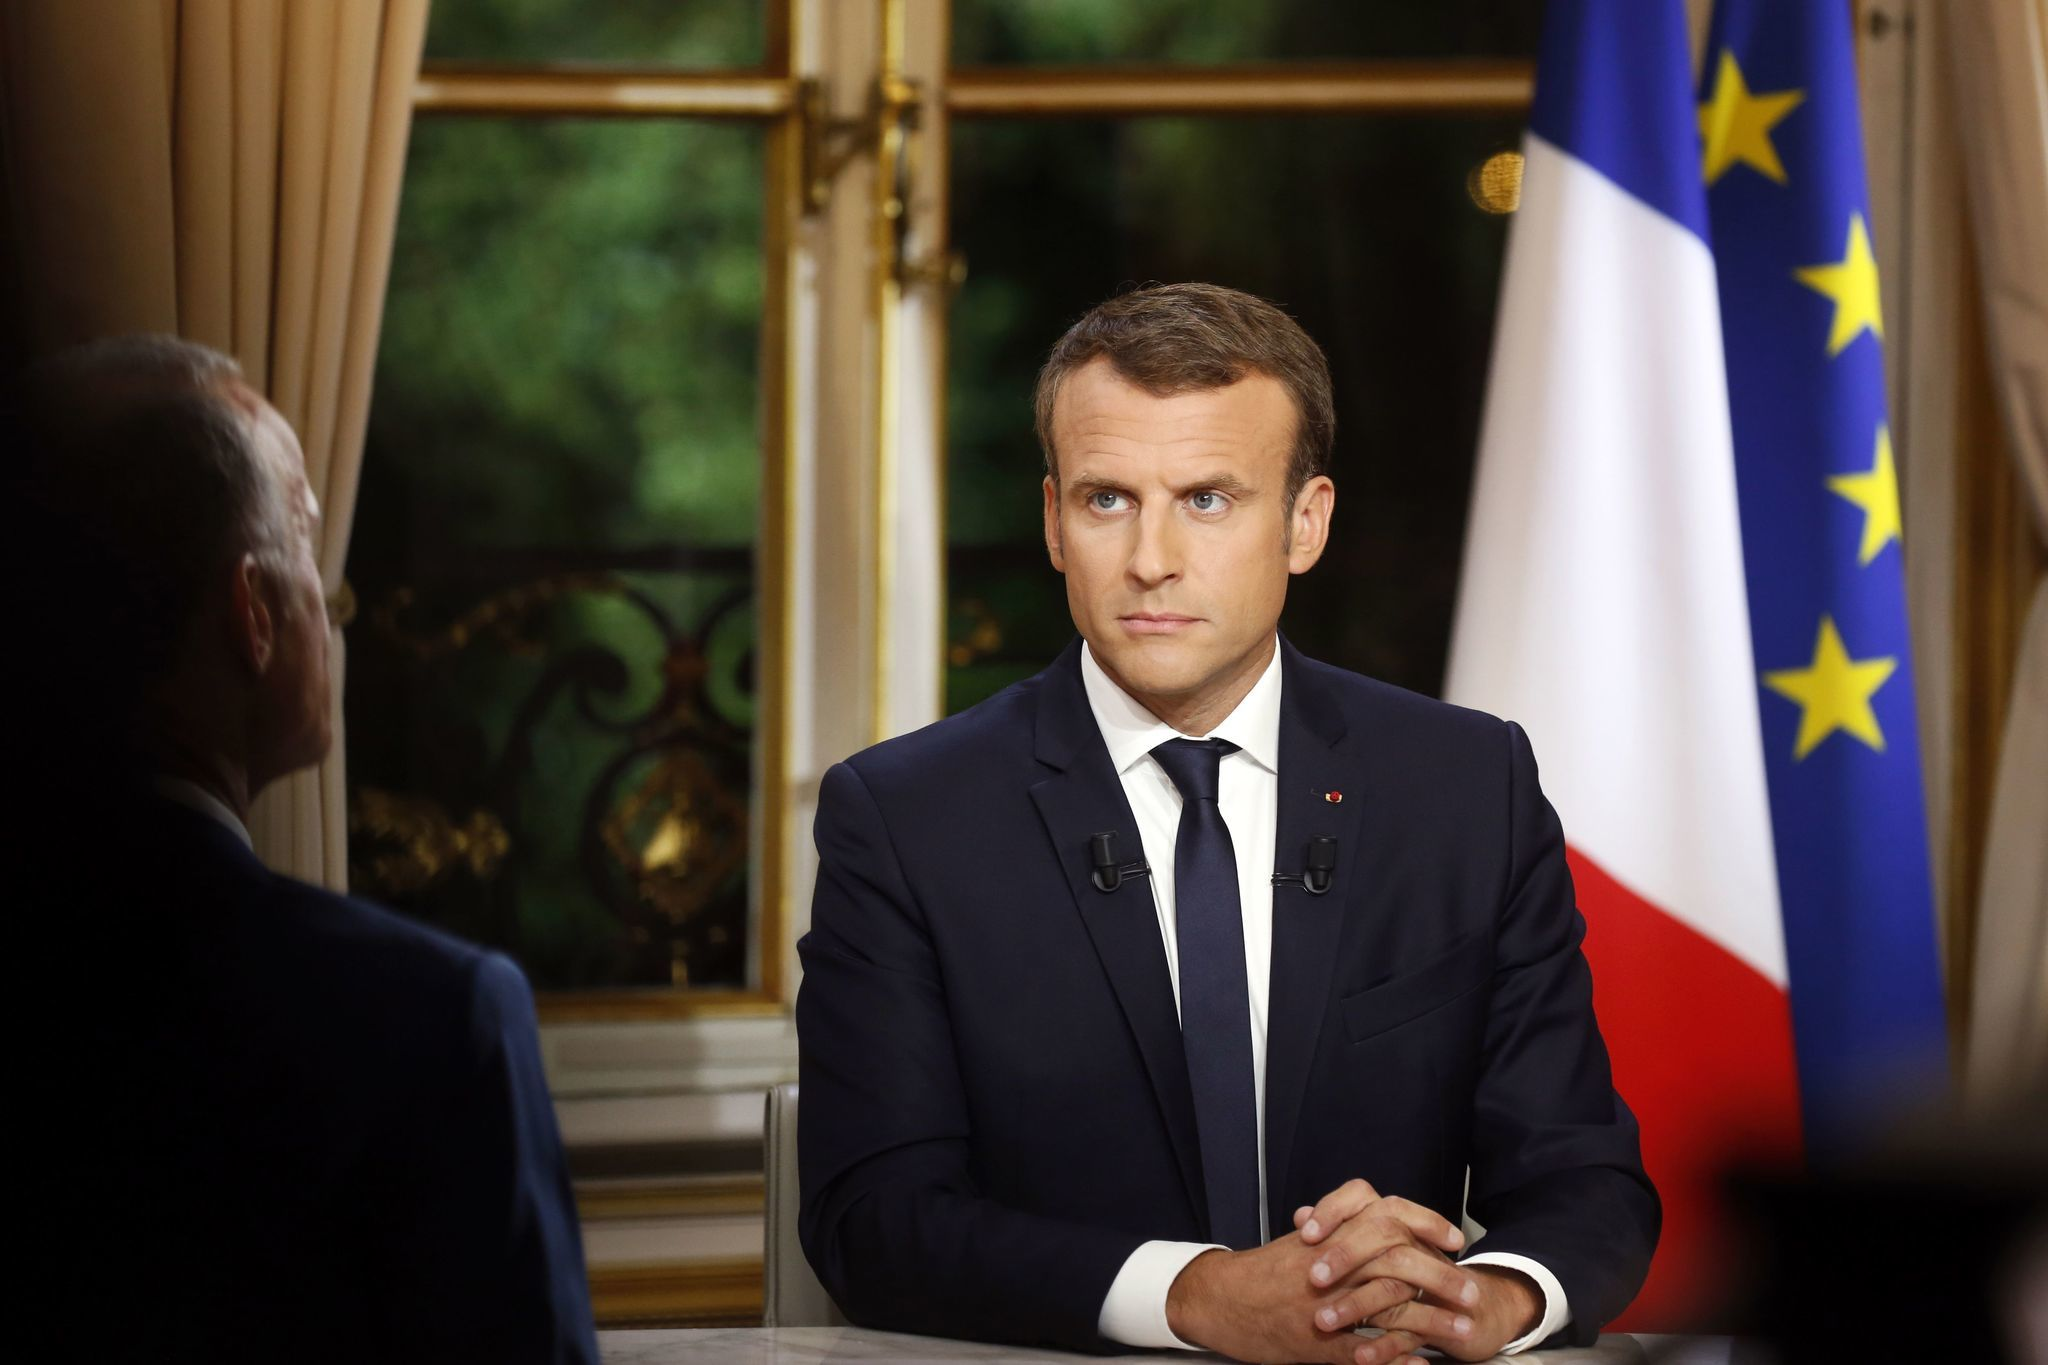 French President Emmanuel Macron is interviewed at the Elysee Palace in Paris on Sunday. (Philippe Wojazer / Pool)